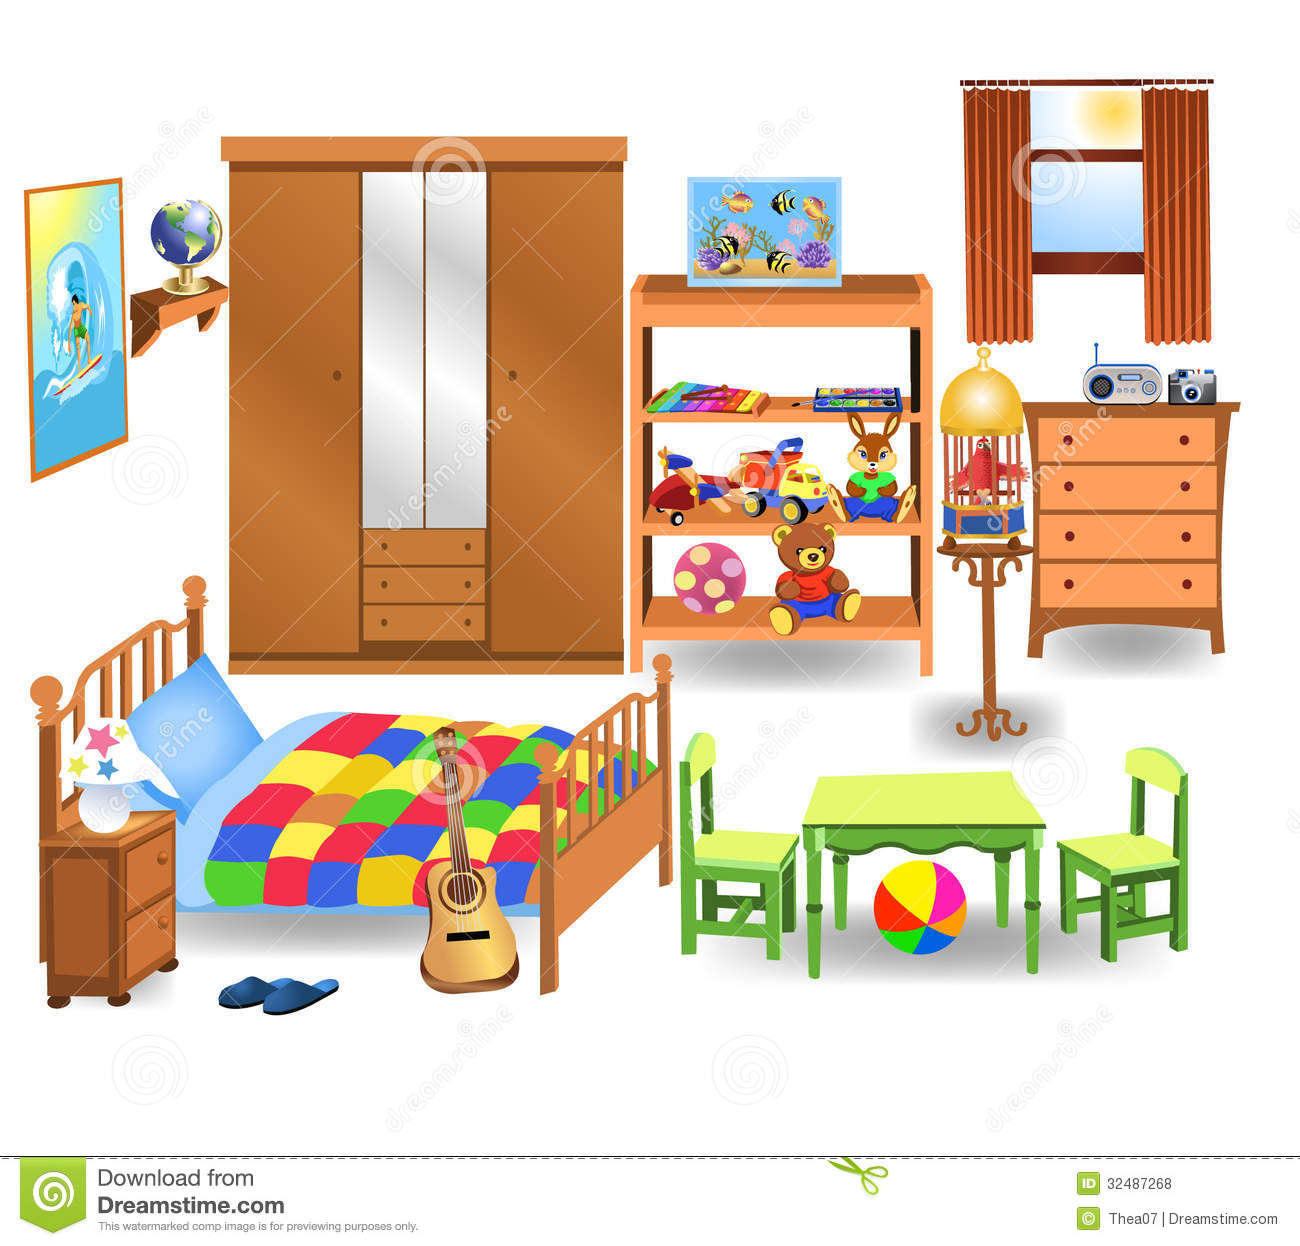 Bedroom clipart #8